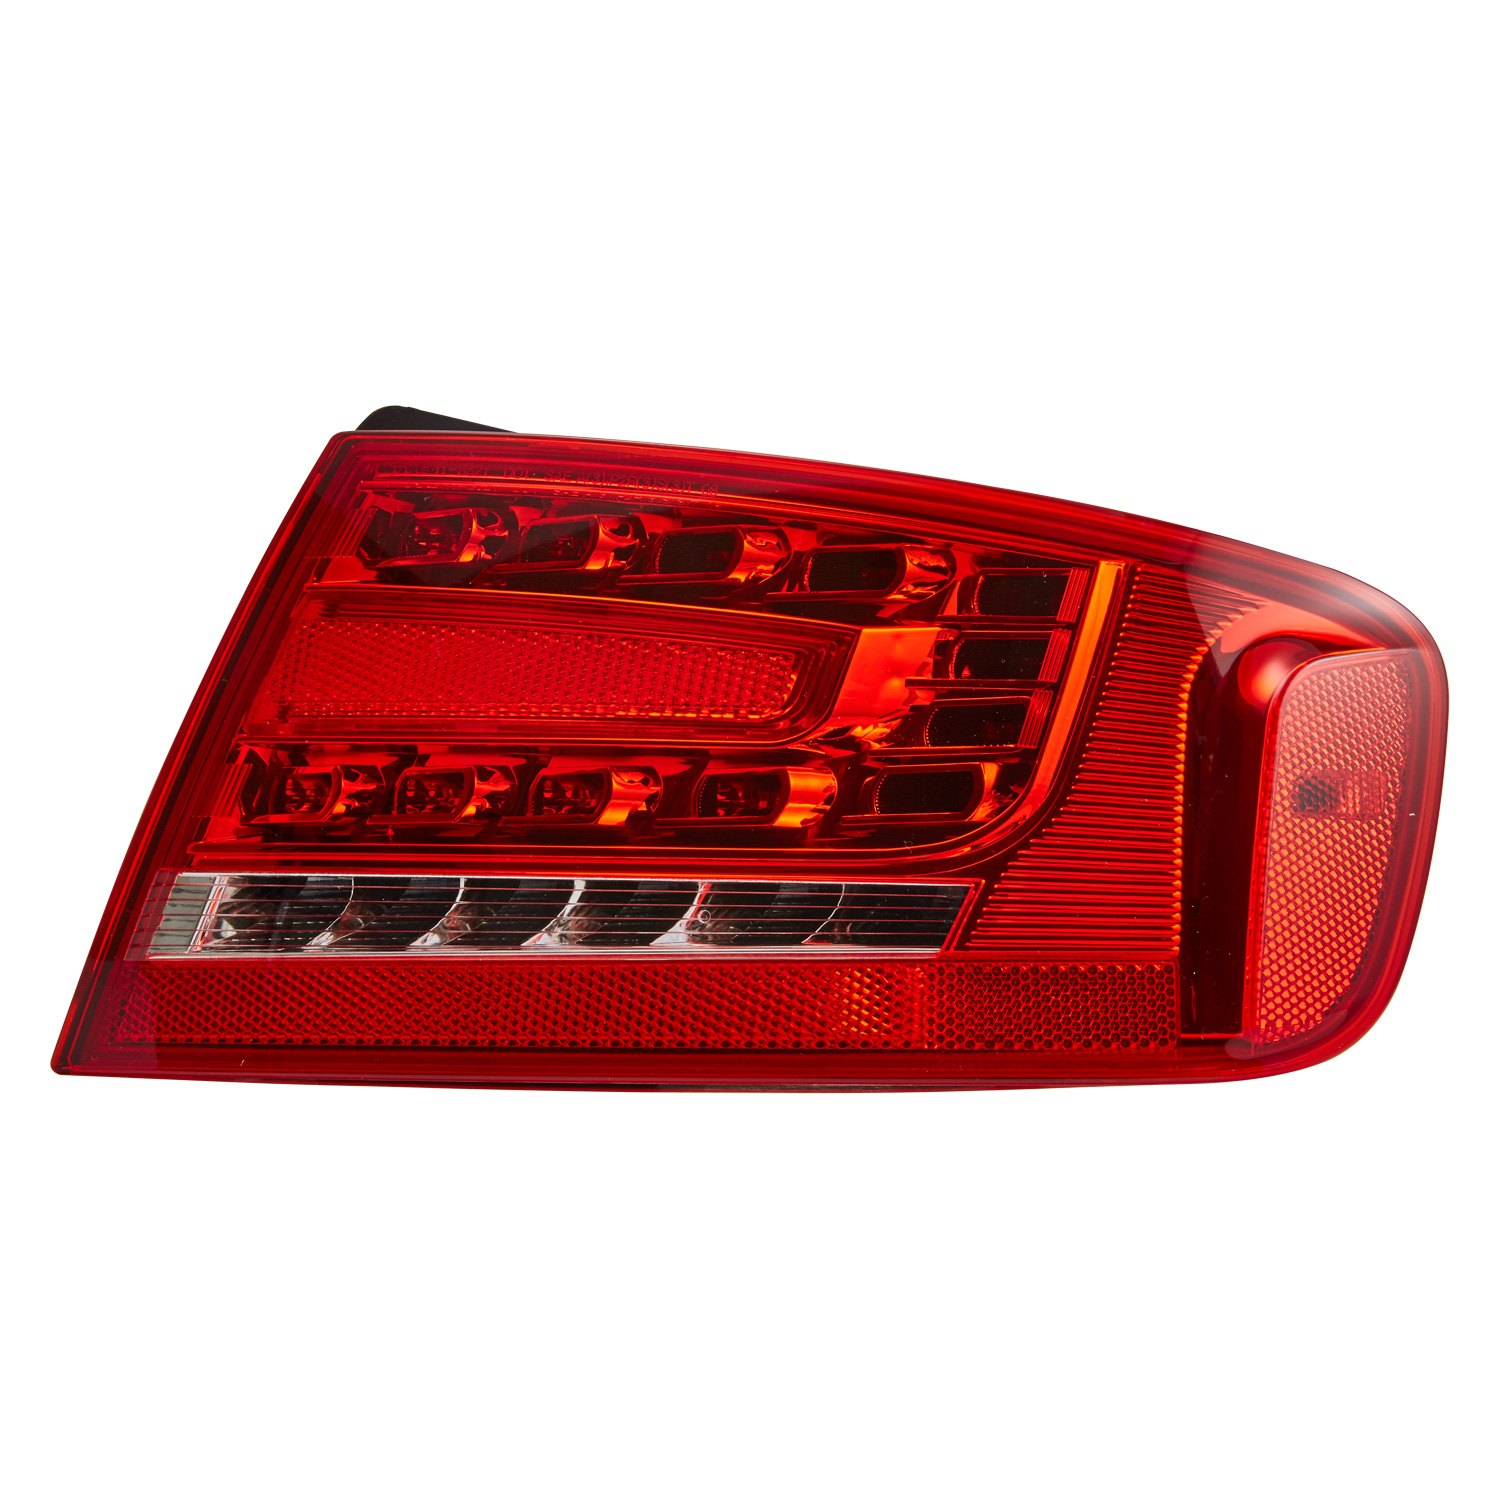 tyc audi a4 a4 quattro 2010 replacement tail light. Black Bedroom Furniture Sets. Home Design Ideas